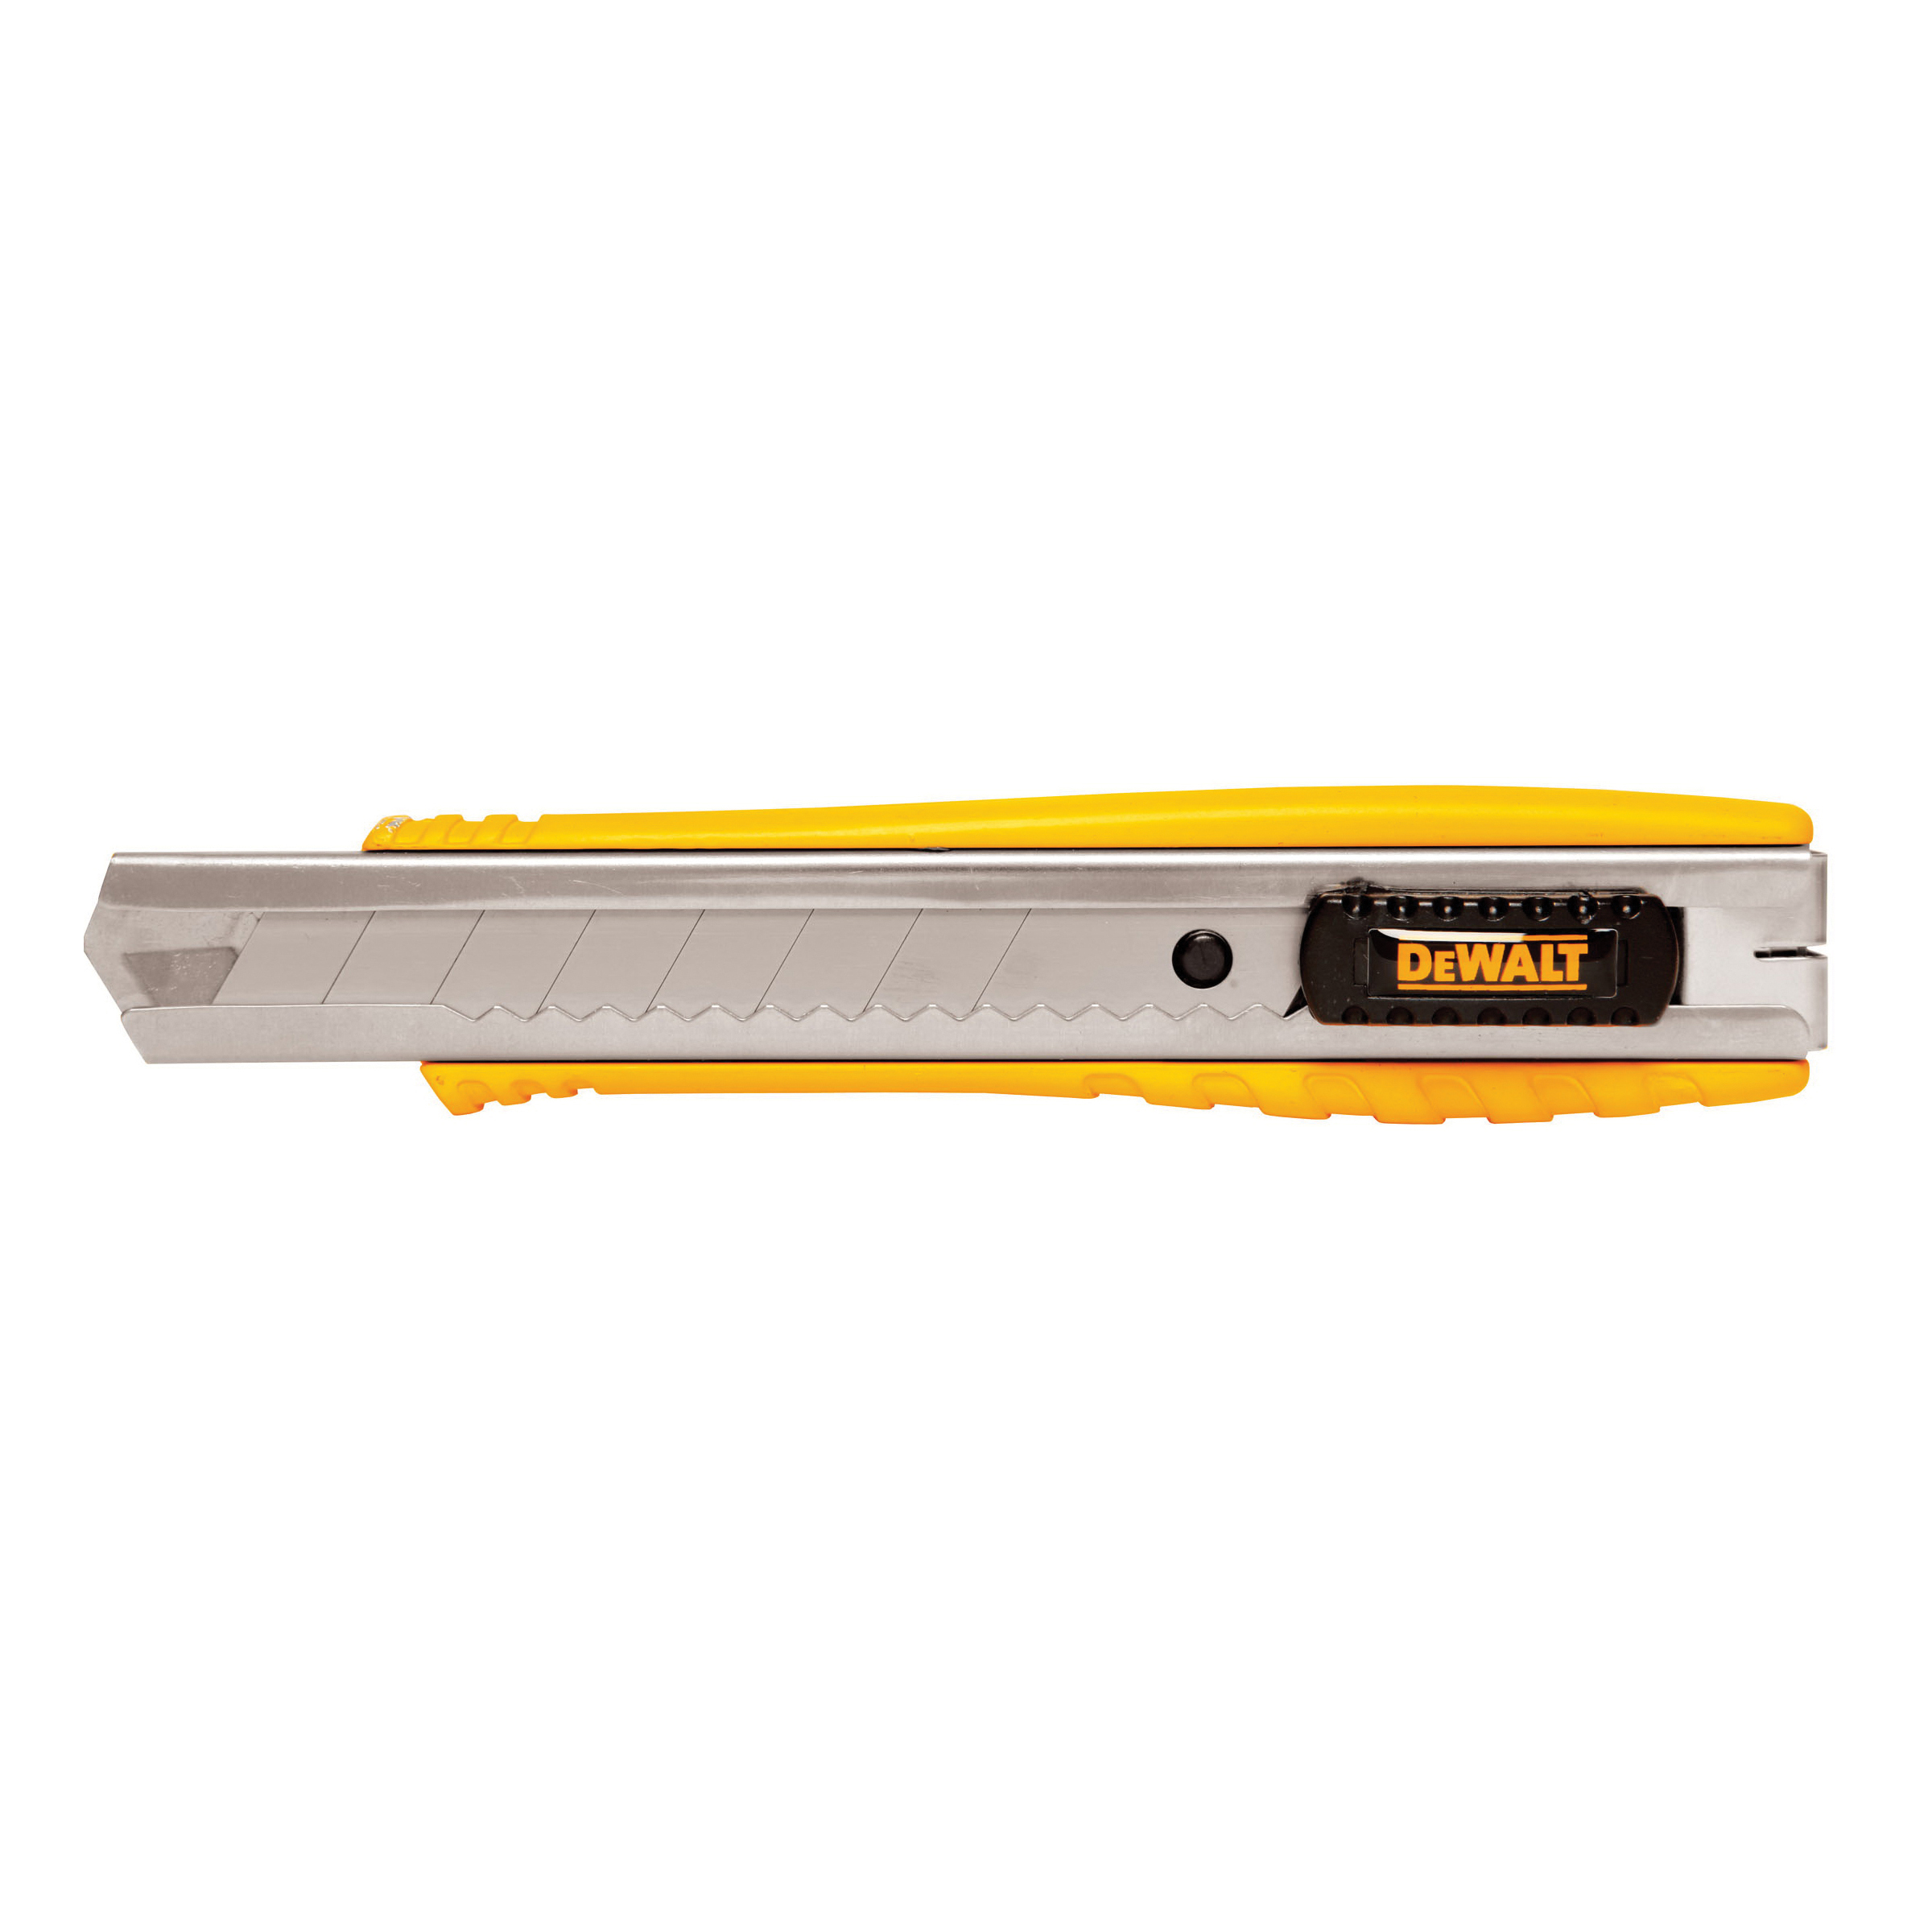 DeWALT® DWHT10038 Standard Utility Knife, 18 mm W Integrated/Snap-Off Blade, Push Button, Carbon Steel Blade, 1 Blade Included, 6-1/4 in OAL